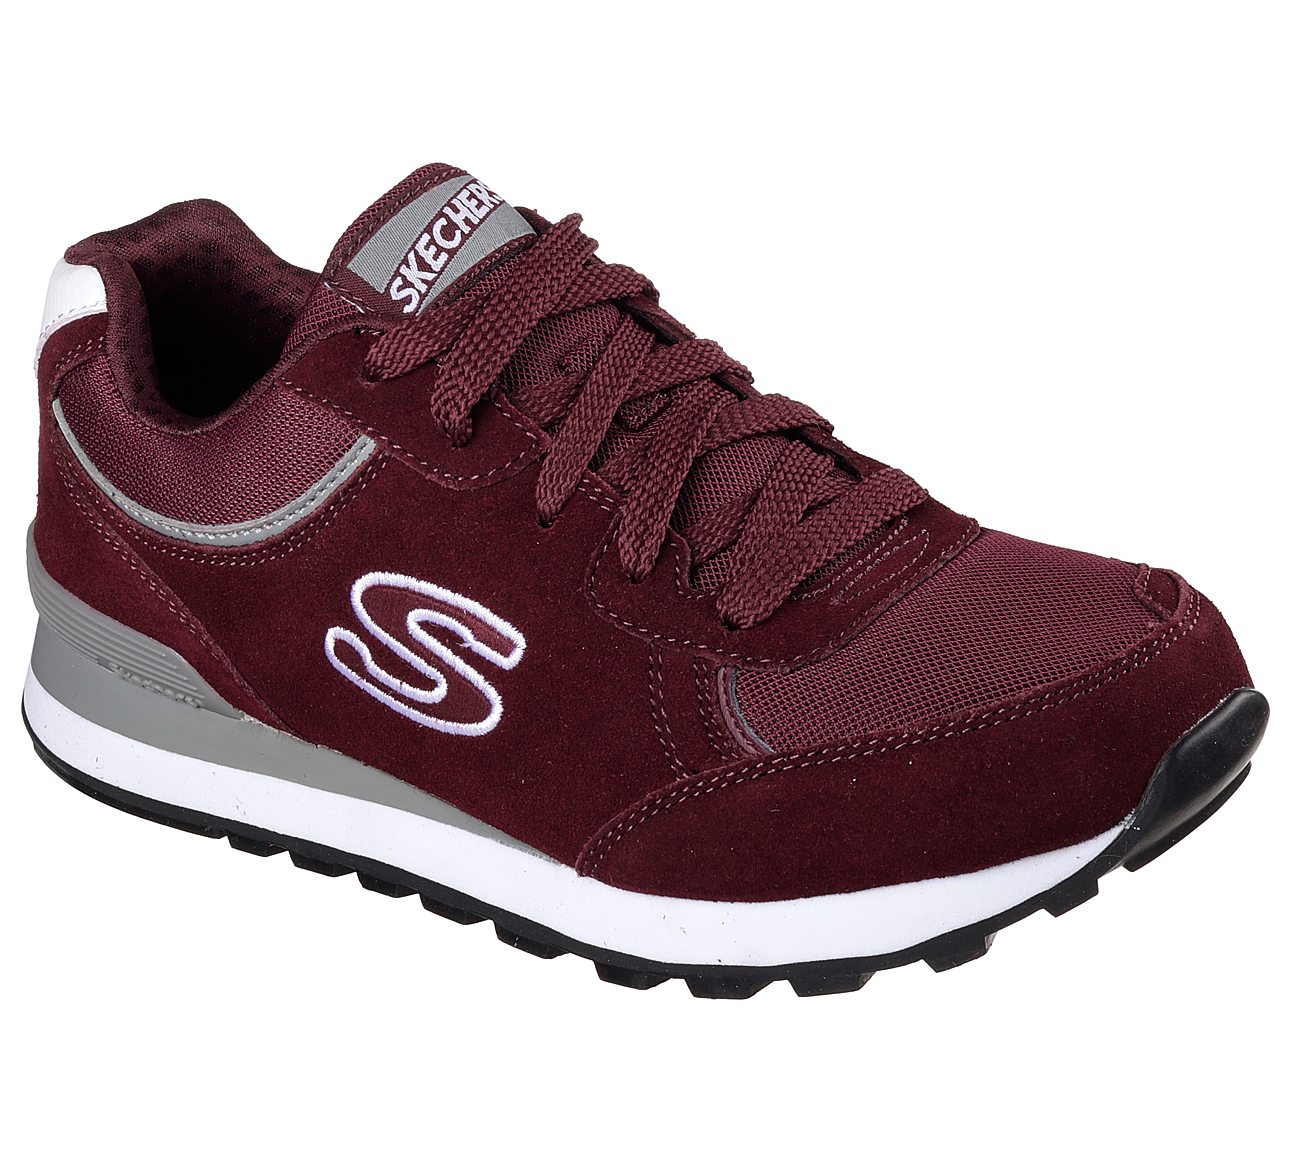 6a393934edc1 Buy SKECHERS OG 82 - Classic Kicks Originals Shoes only  60.00